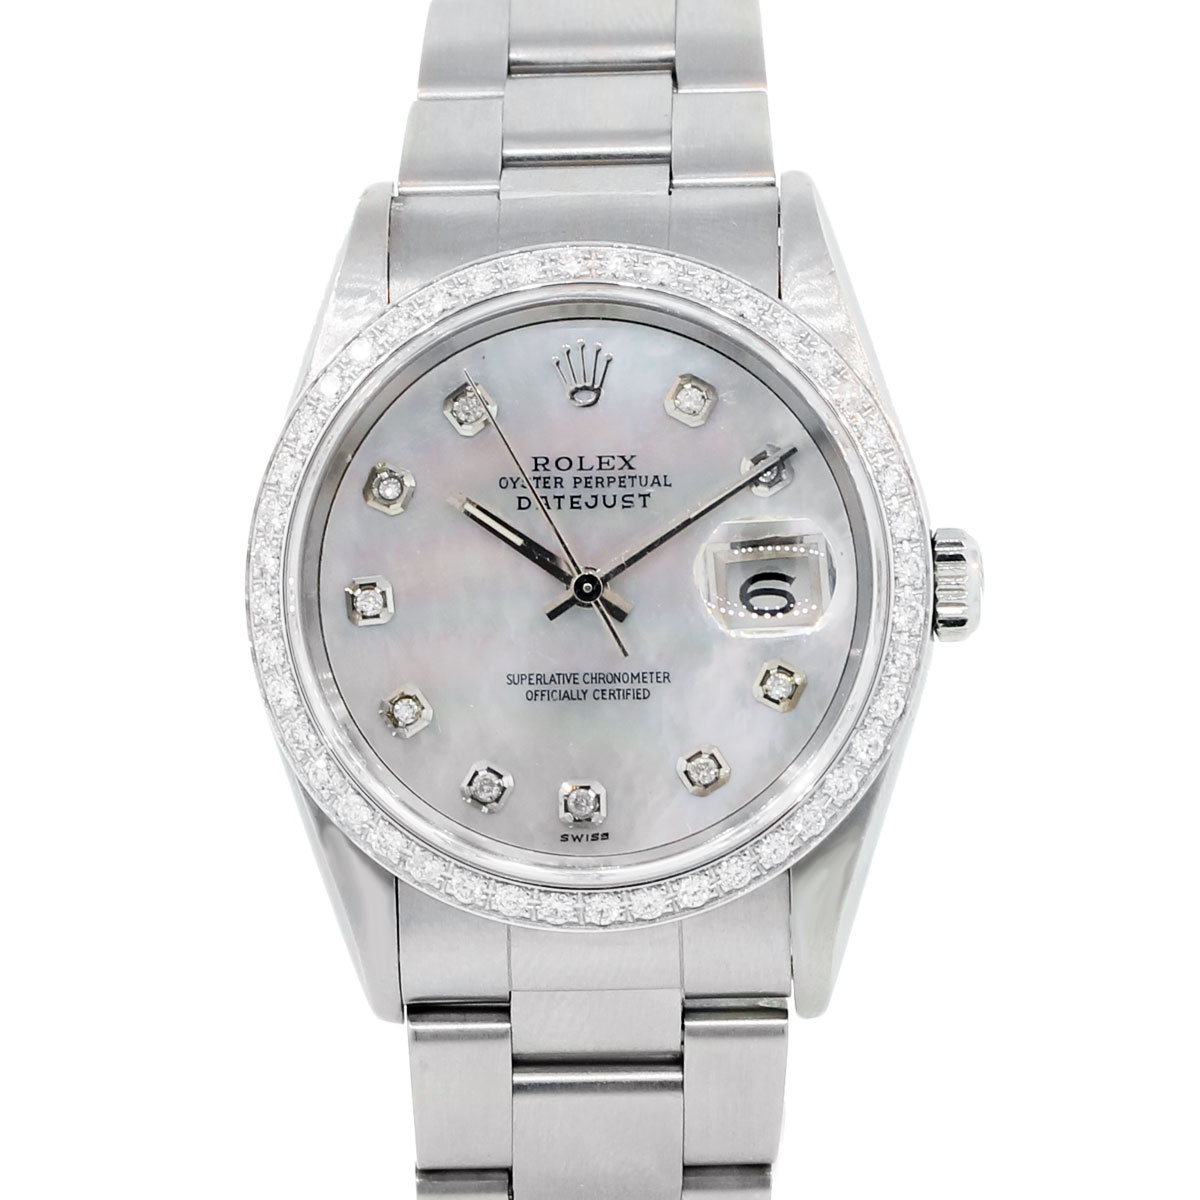 You are viewing this Rolex 16200 Tahitian Mother of Pearl Diamond Watch!